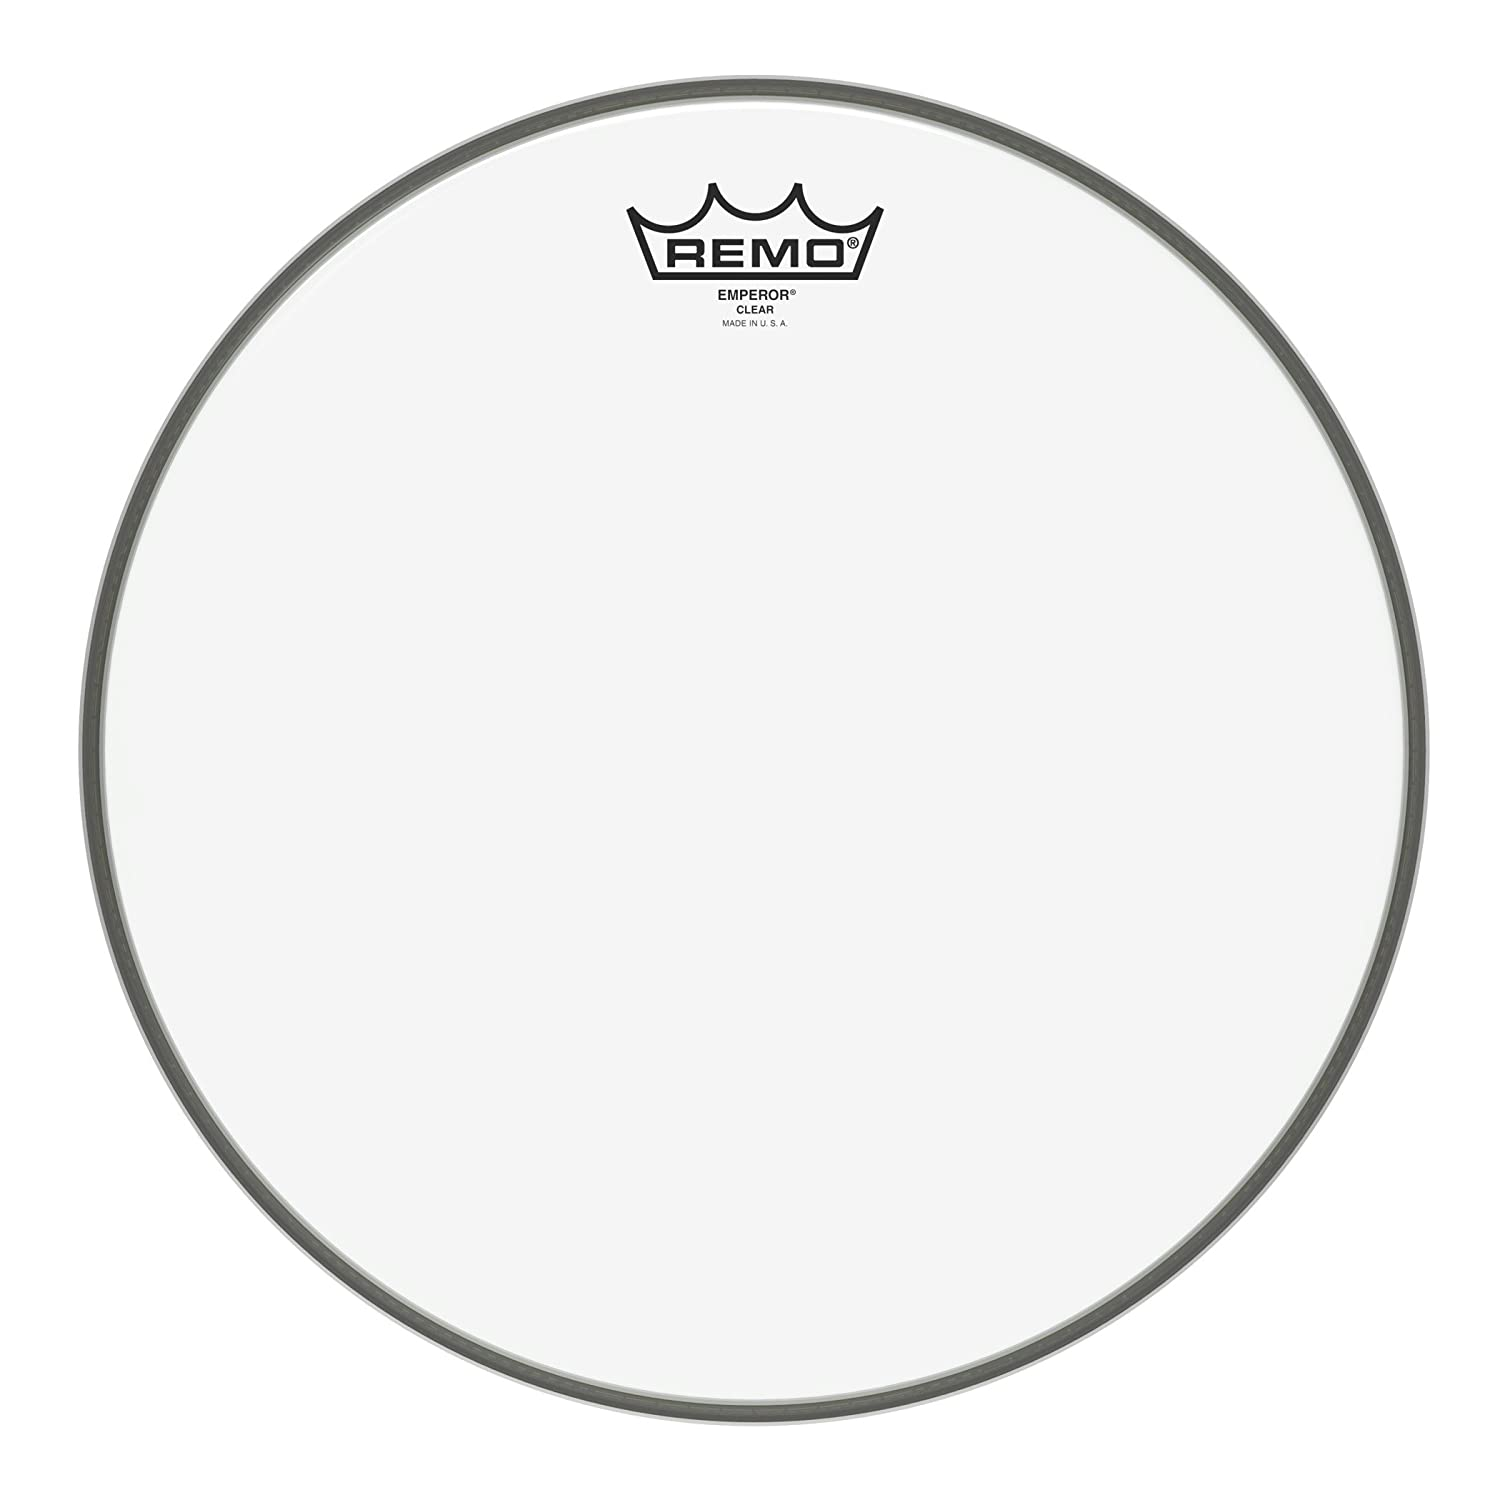 Remo Emperor Clear Drum Head - 13 Inch 71naNQf8z5L